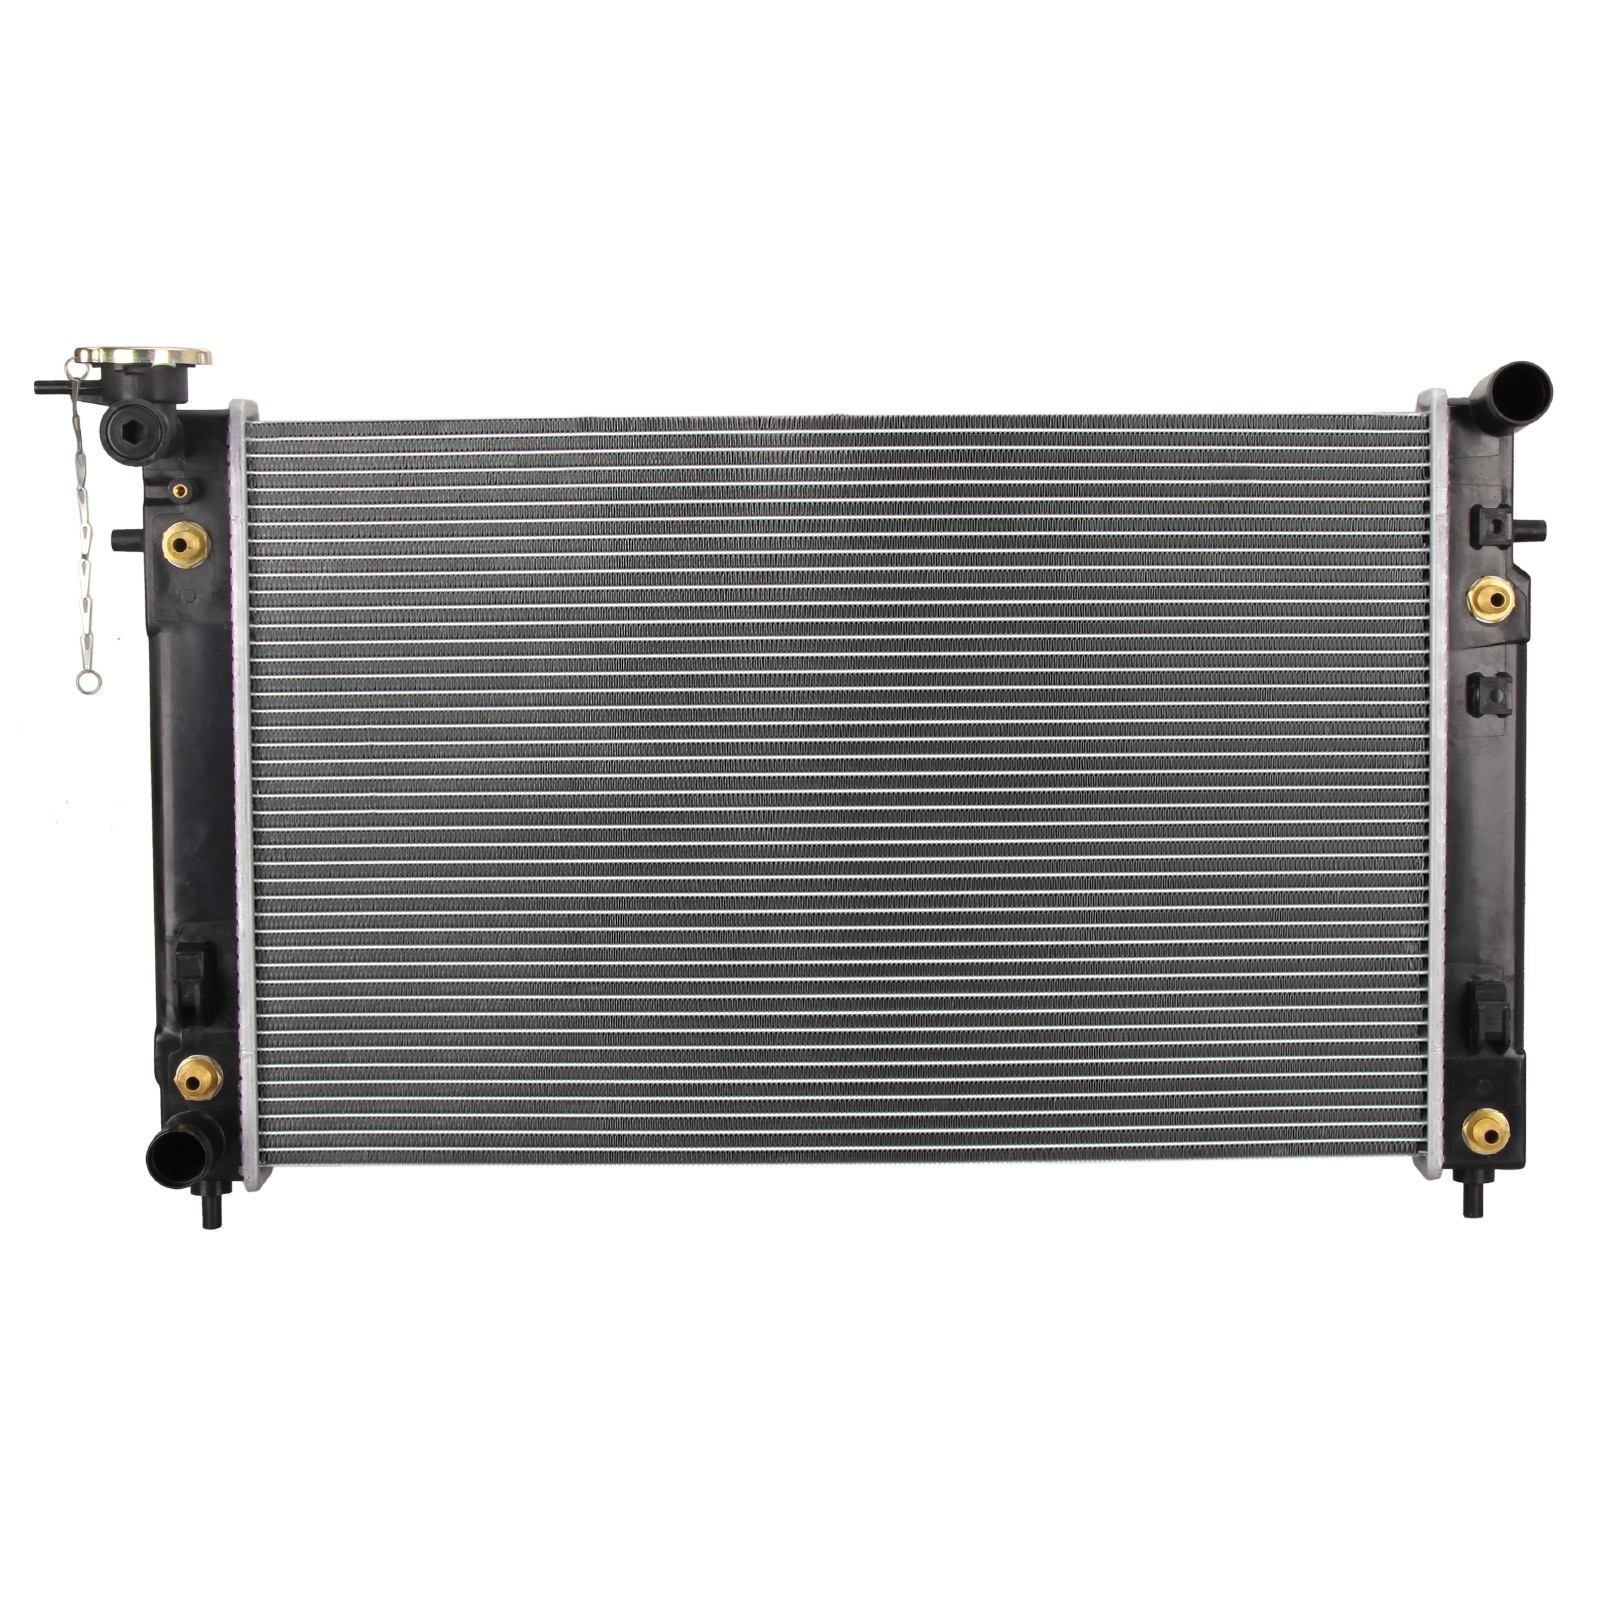 Dromedary-Manufacturer Of Holden Rodeo Radiator Premium Radiator For Holden Commodore Vt Vx V6 3-1